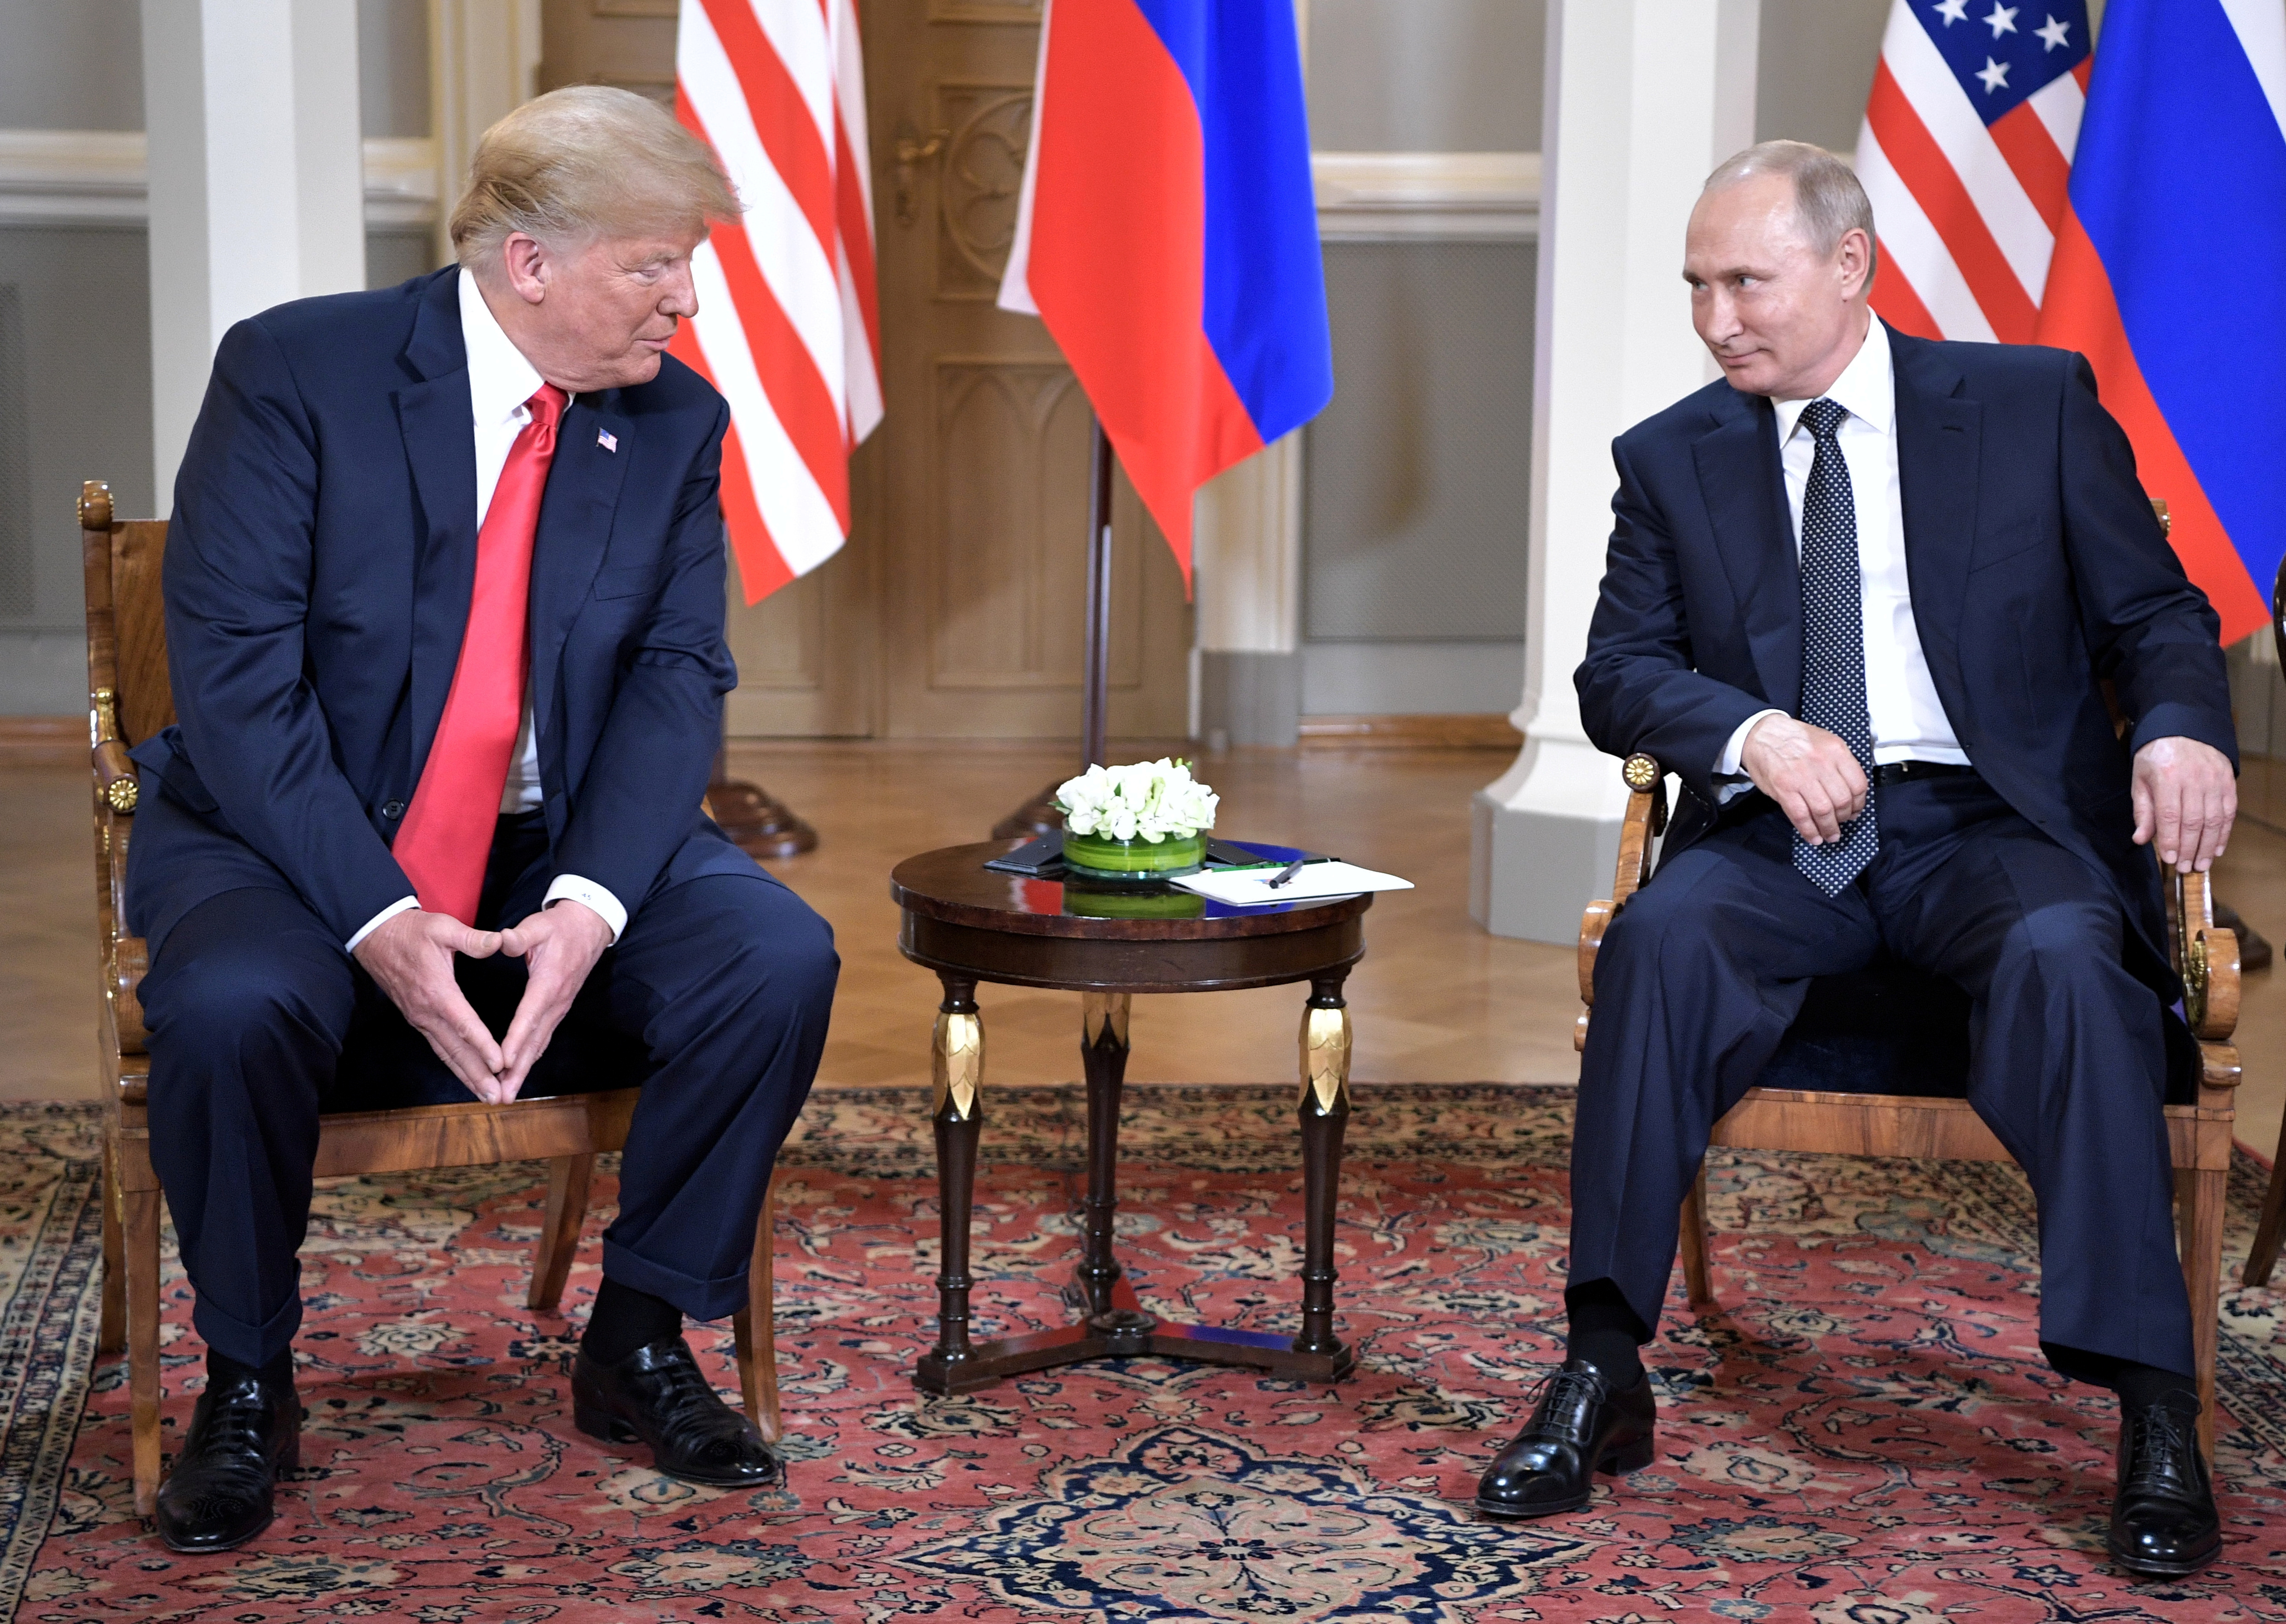 Russia's President Vladimir Putin (R) and U.S. President Donald Trump attend a meeting in Helsinki, Finland July 16, 2018. Sputnik/Alexei Nikolsky/Kremlin via REUTERS  ATTENTION EDITORS - THIS IMAGE WAS PROVIDED BY A THIRD PARTY. - RC1AA427BD00